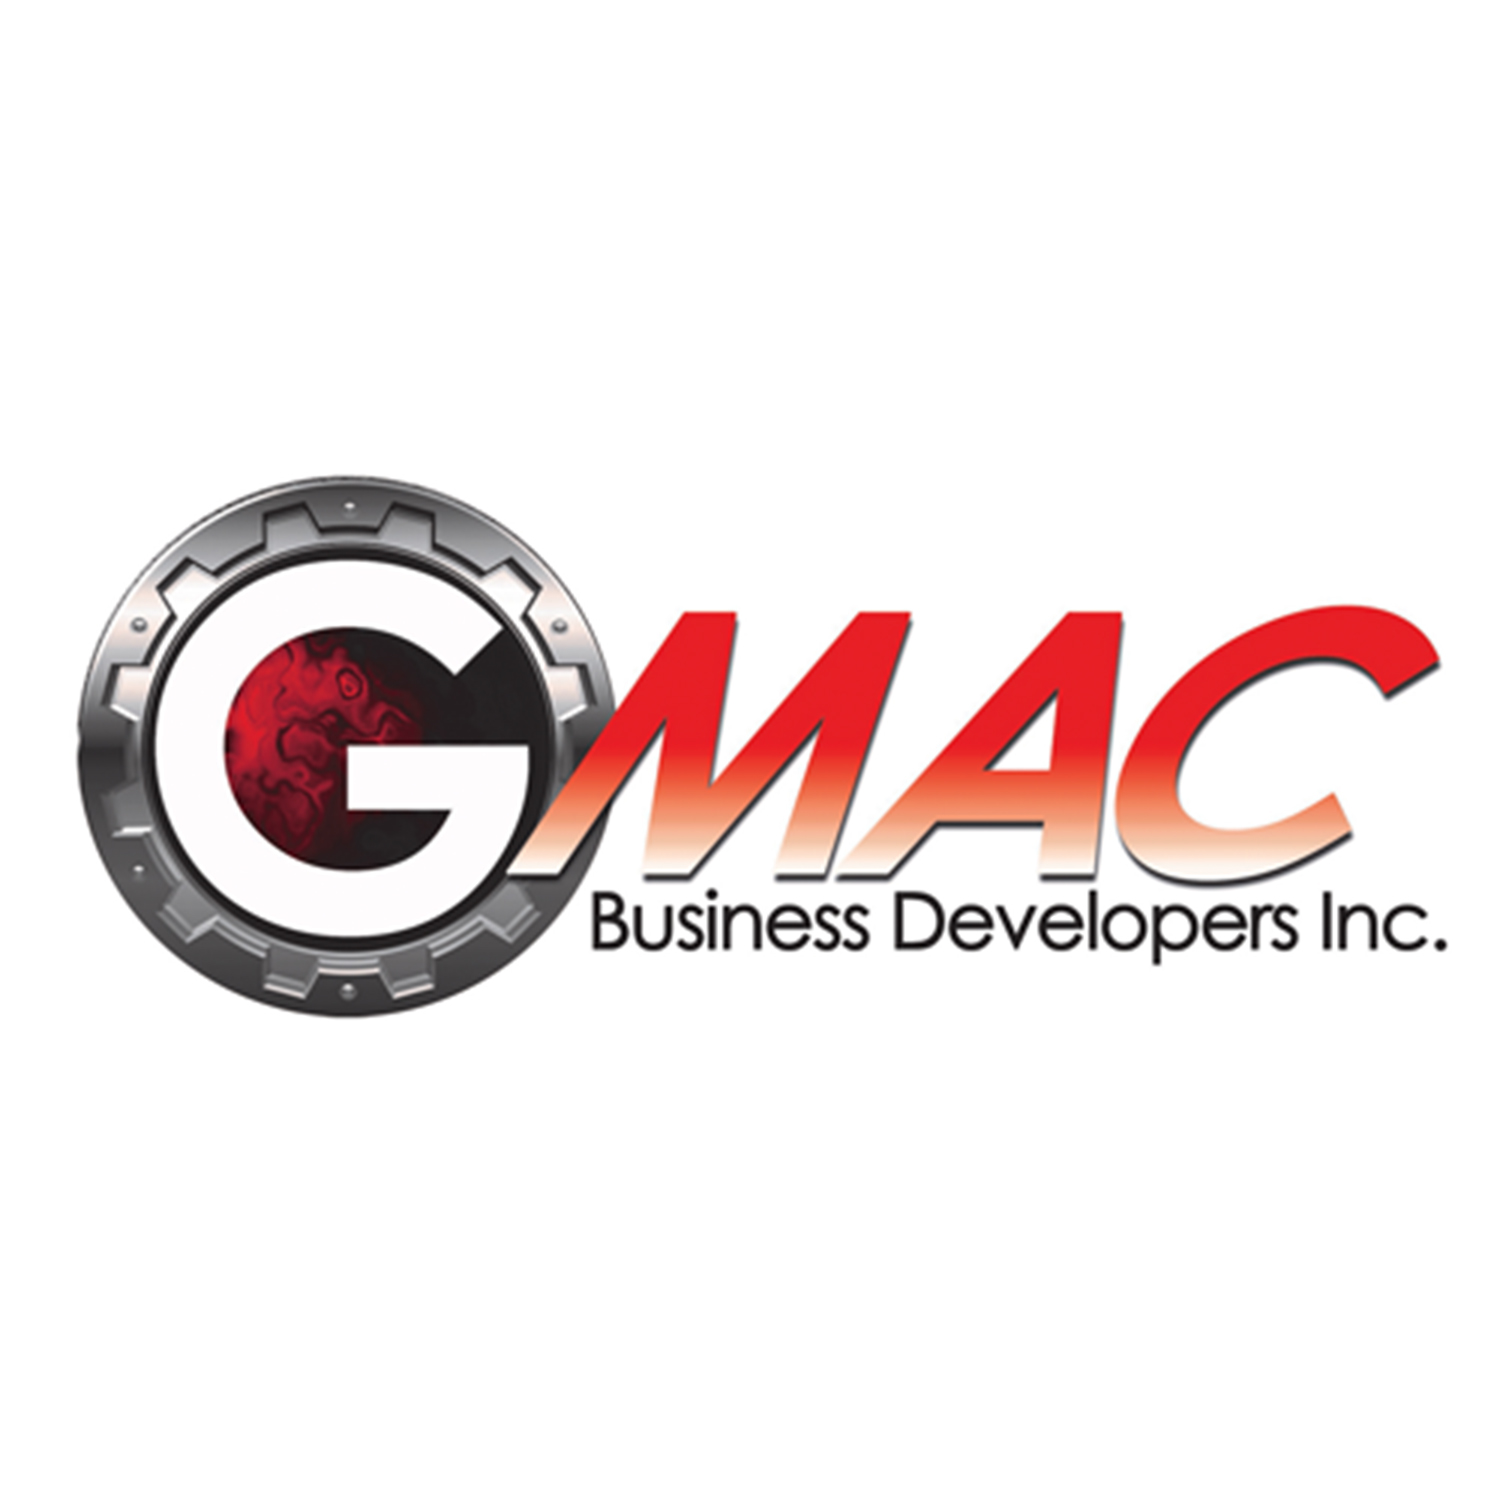 GMAC Business Developers, Inc image